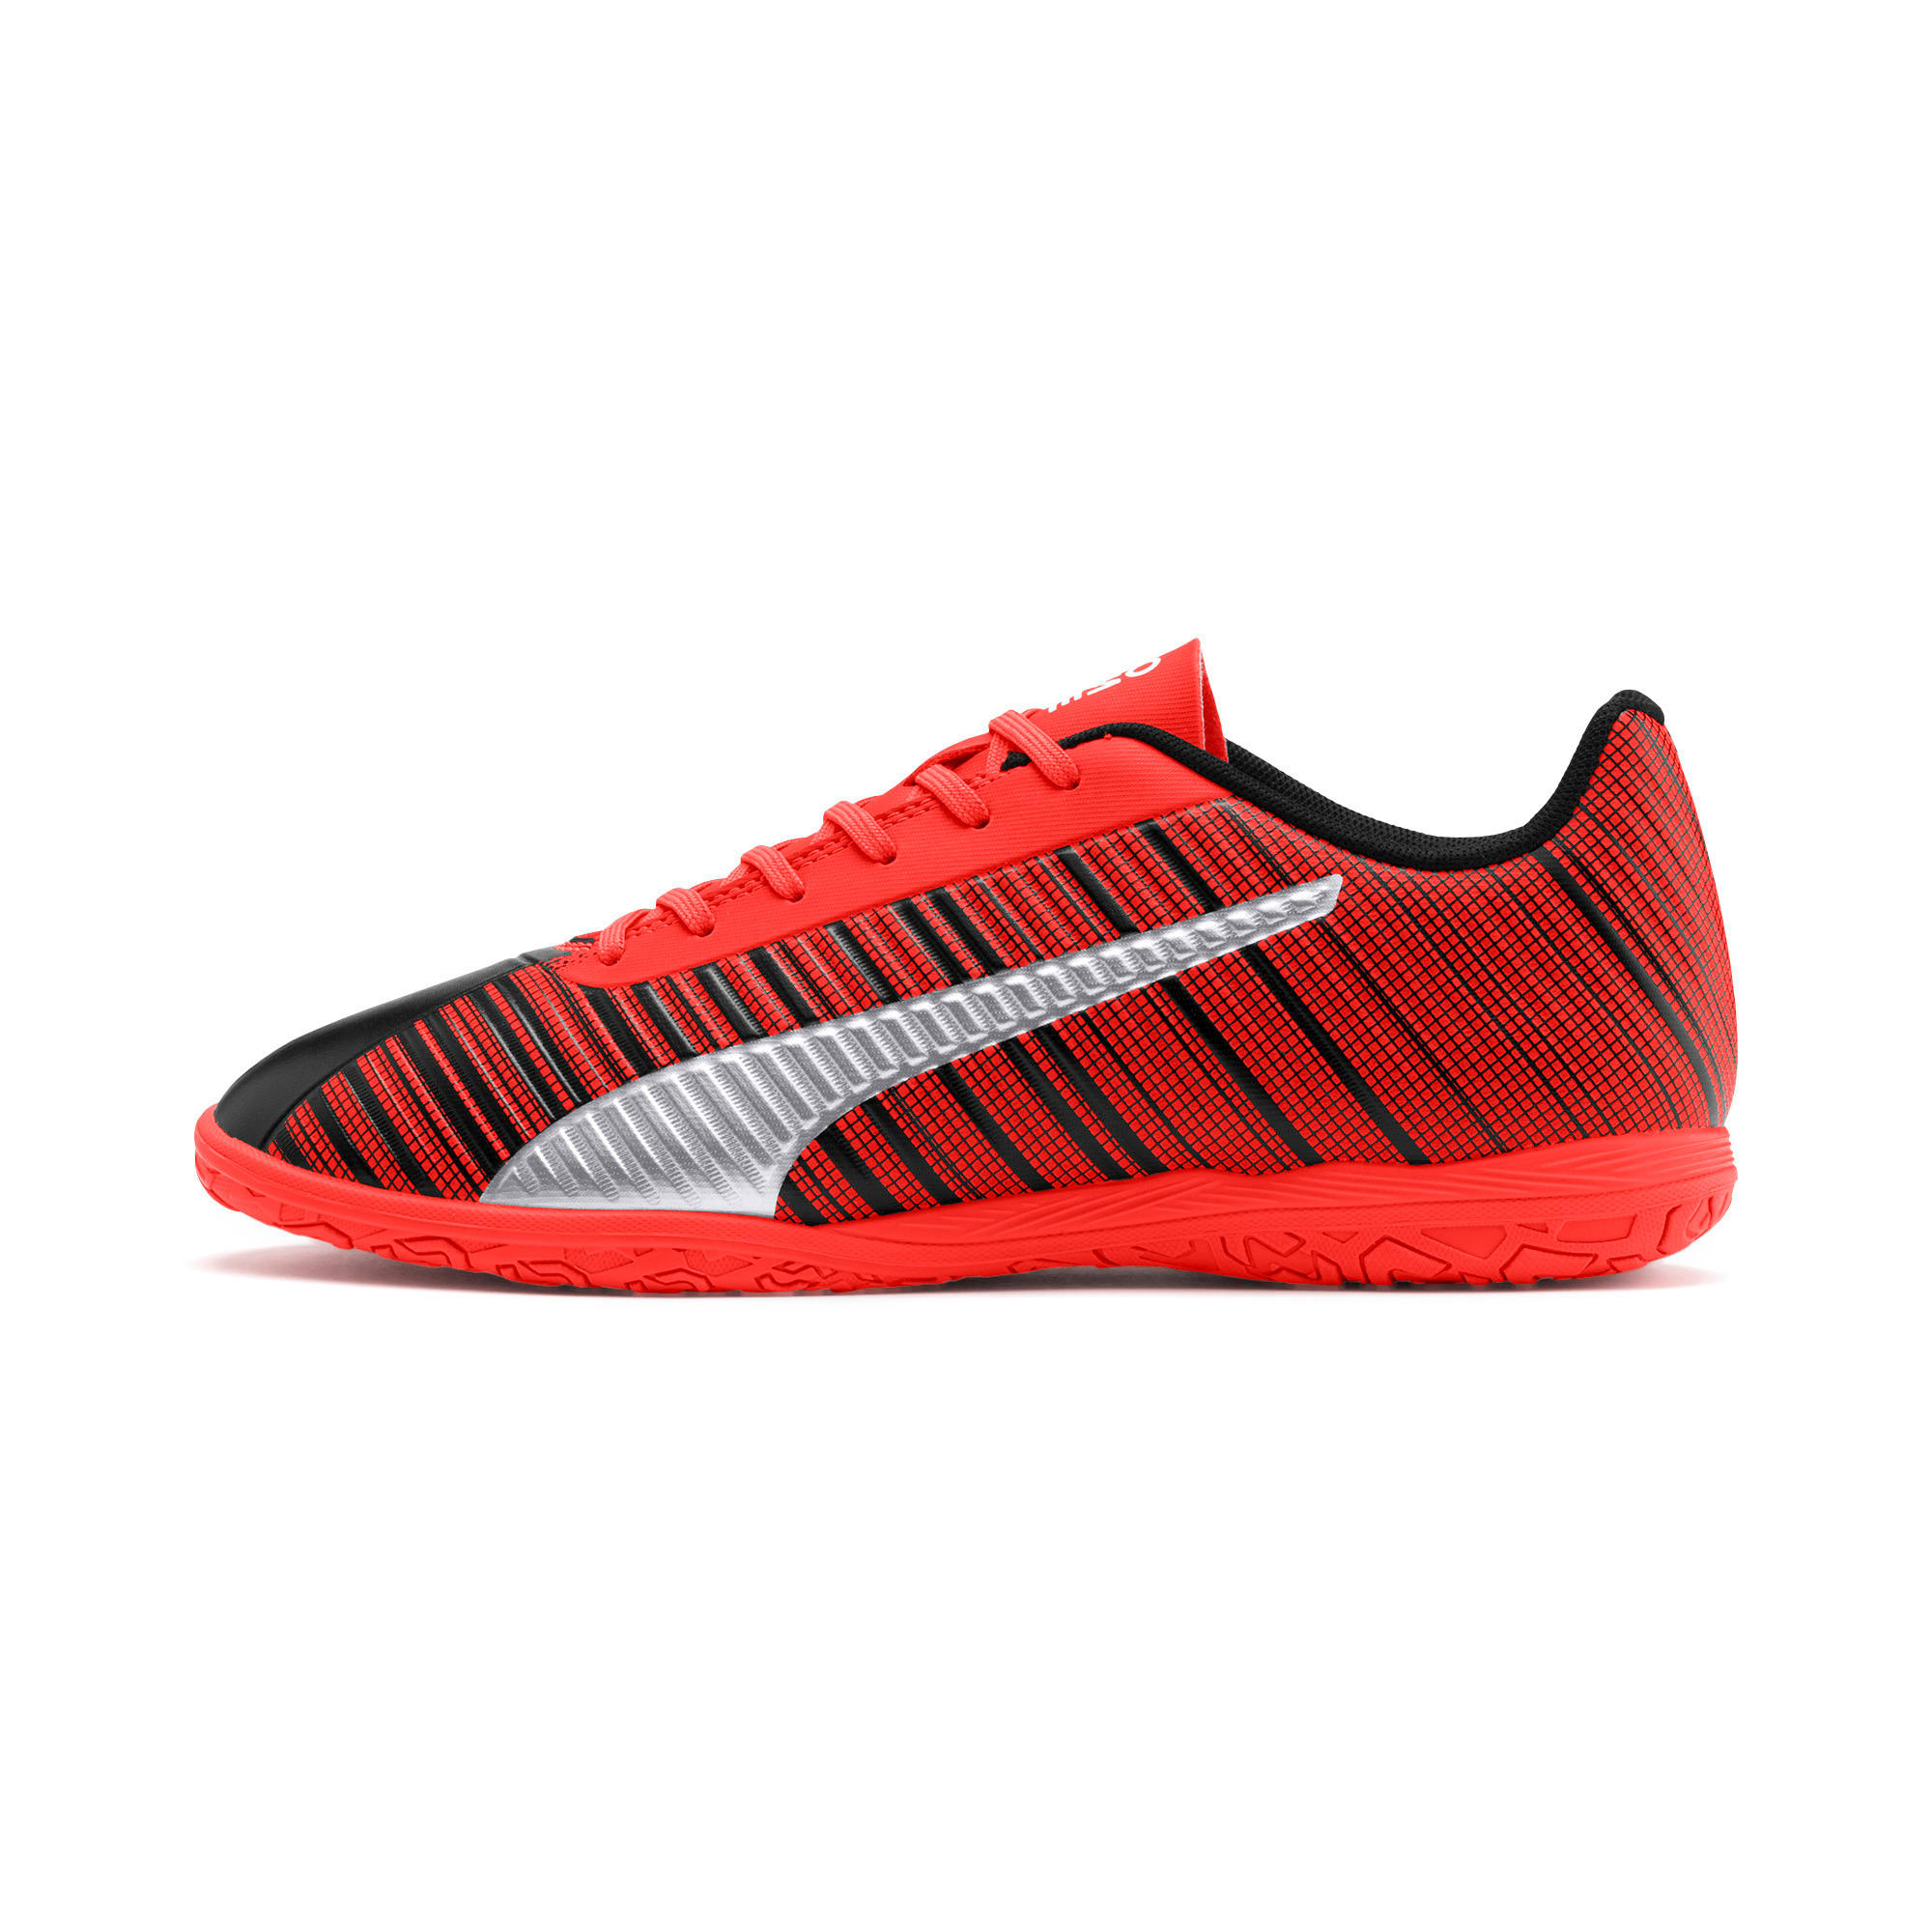 Thumbnail 1 of PUMA ONE 5.4 IT Men's Soccer Shoes, Black-Nrgy Red-Aged Silver, medium